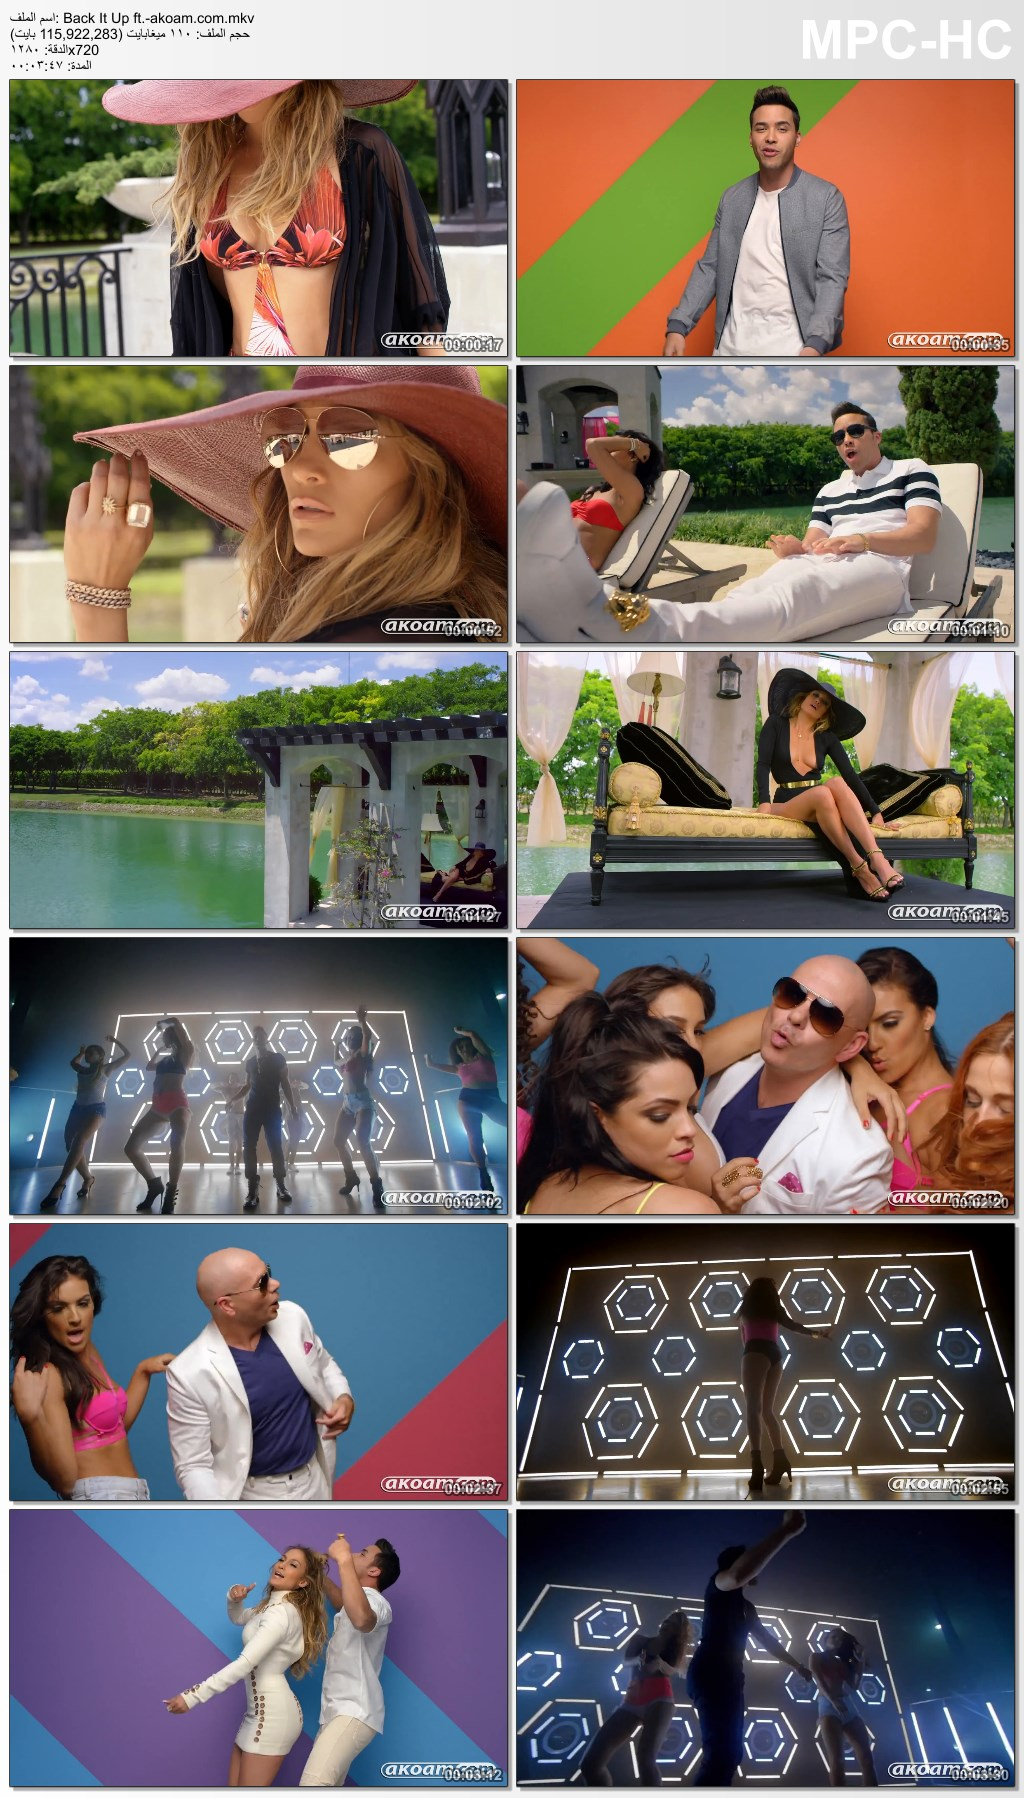 جنيفر لوبيز,بيتبول,Prince,Royce,Back,Jennifer,Lopez,Pitbull,Jennifer Lopez,Prince Royce,Back It Up ft